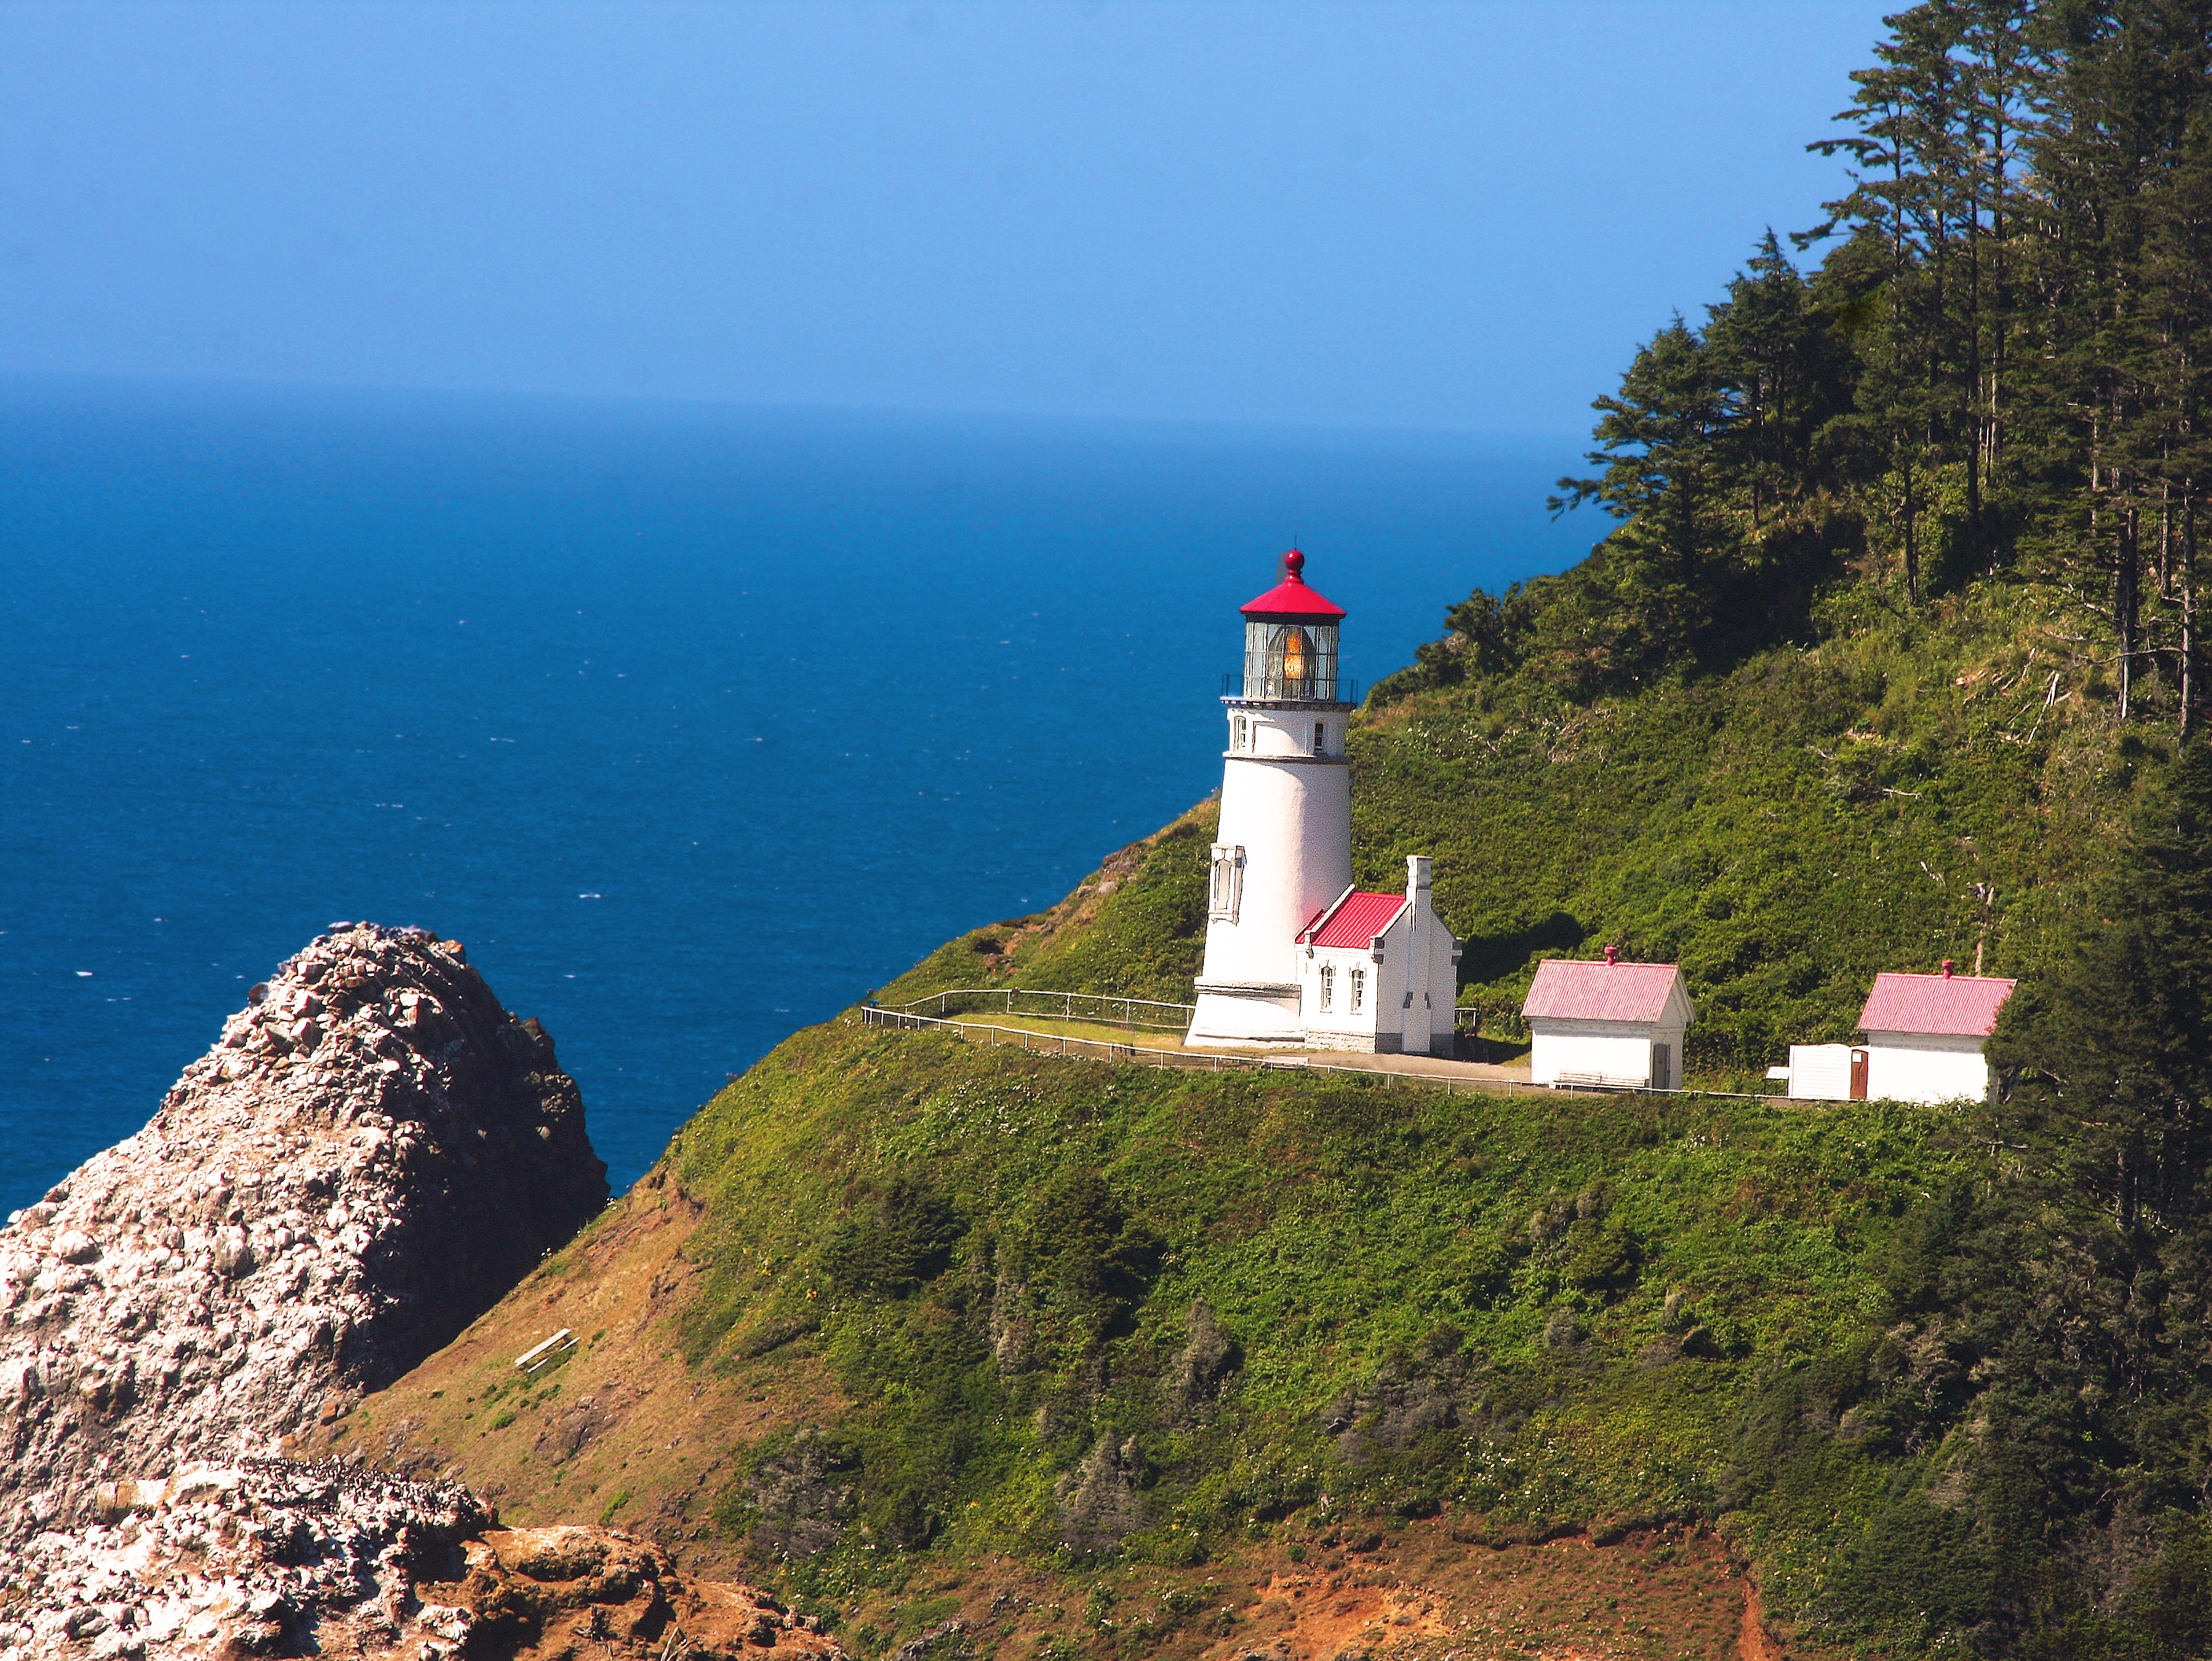 Heceta Head Lighthouse, photo by Rennett Stowe via Flickr Creative Commons